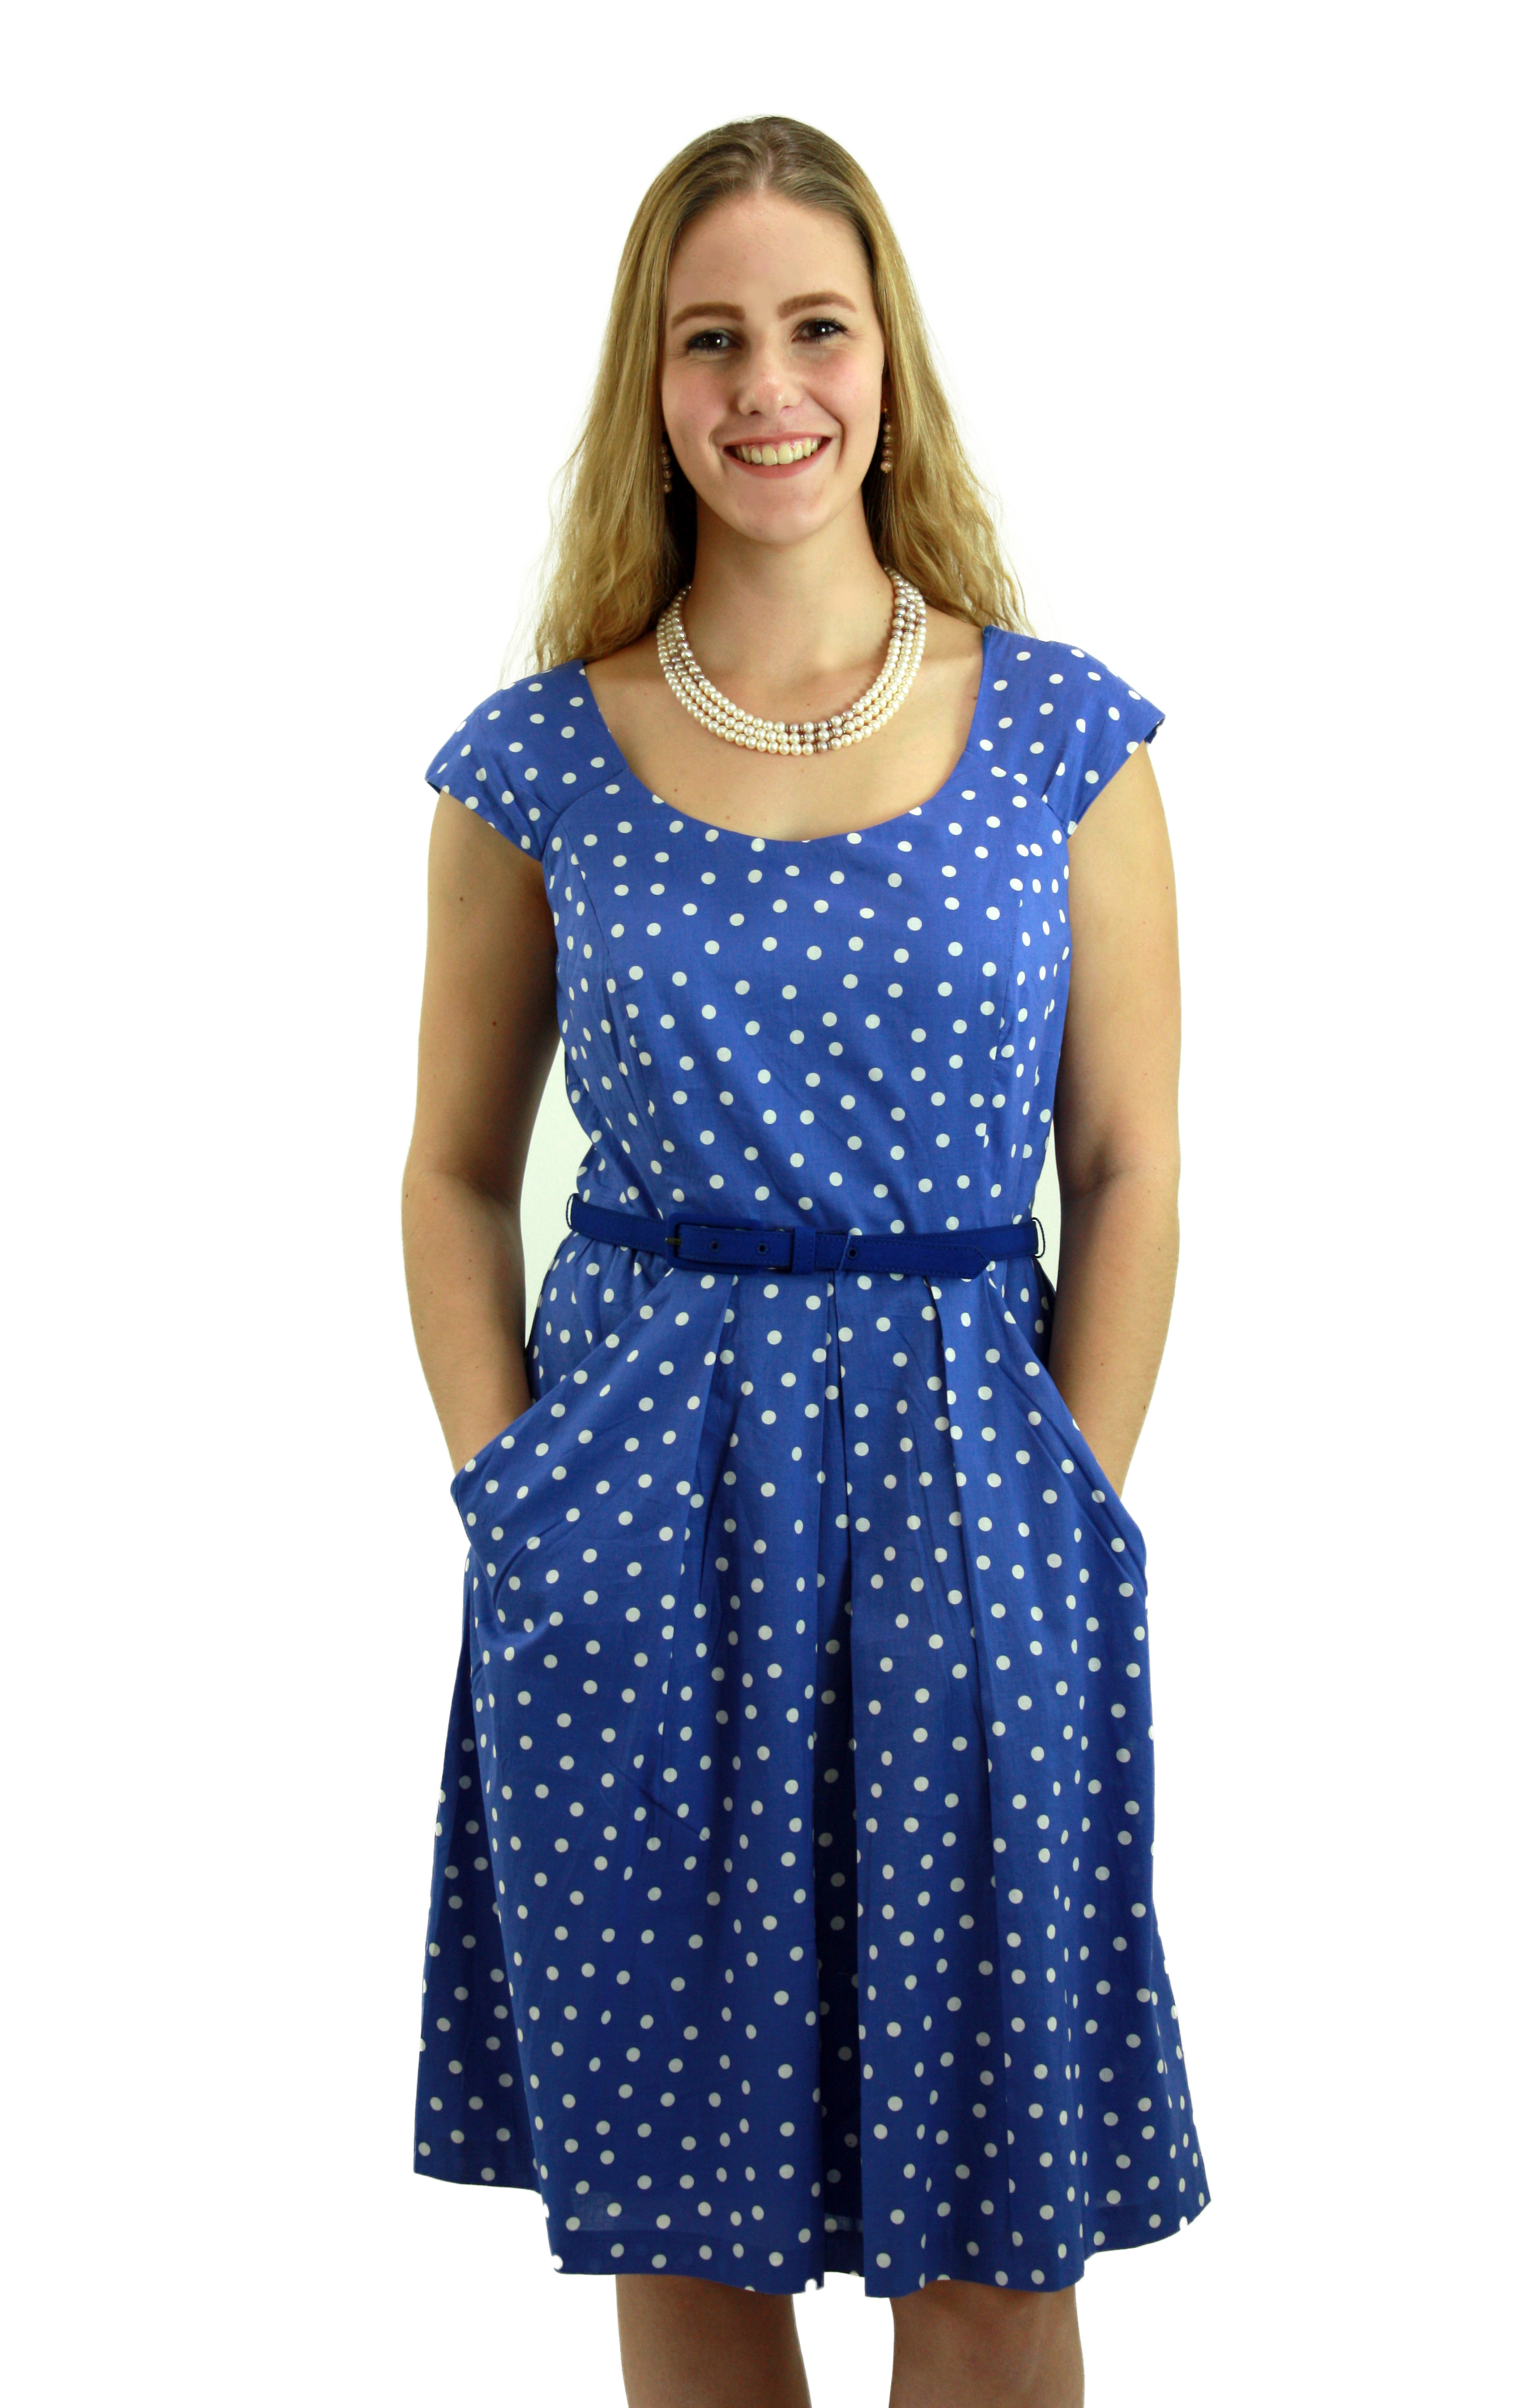 Lavender Blue polka dotted Fit and Flare Dress with Belt DRLN014